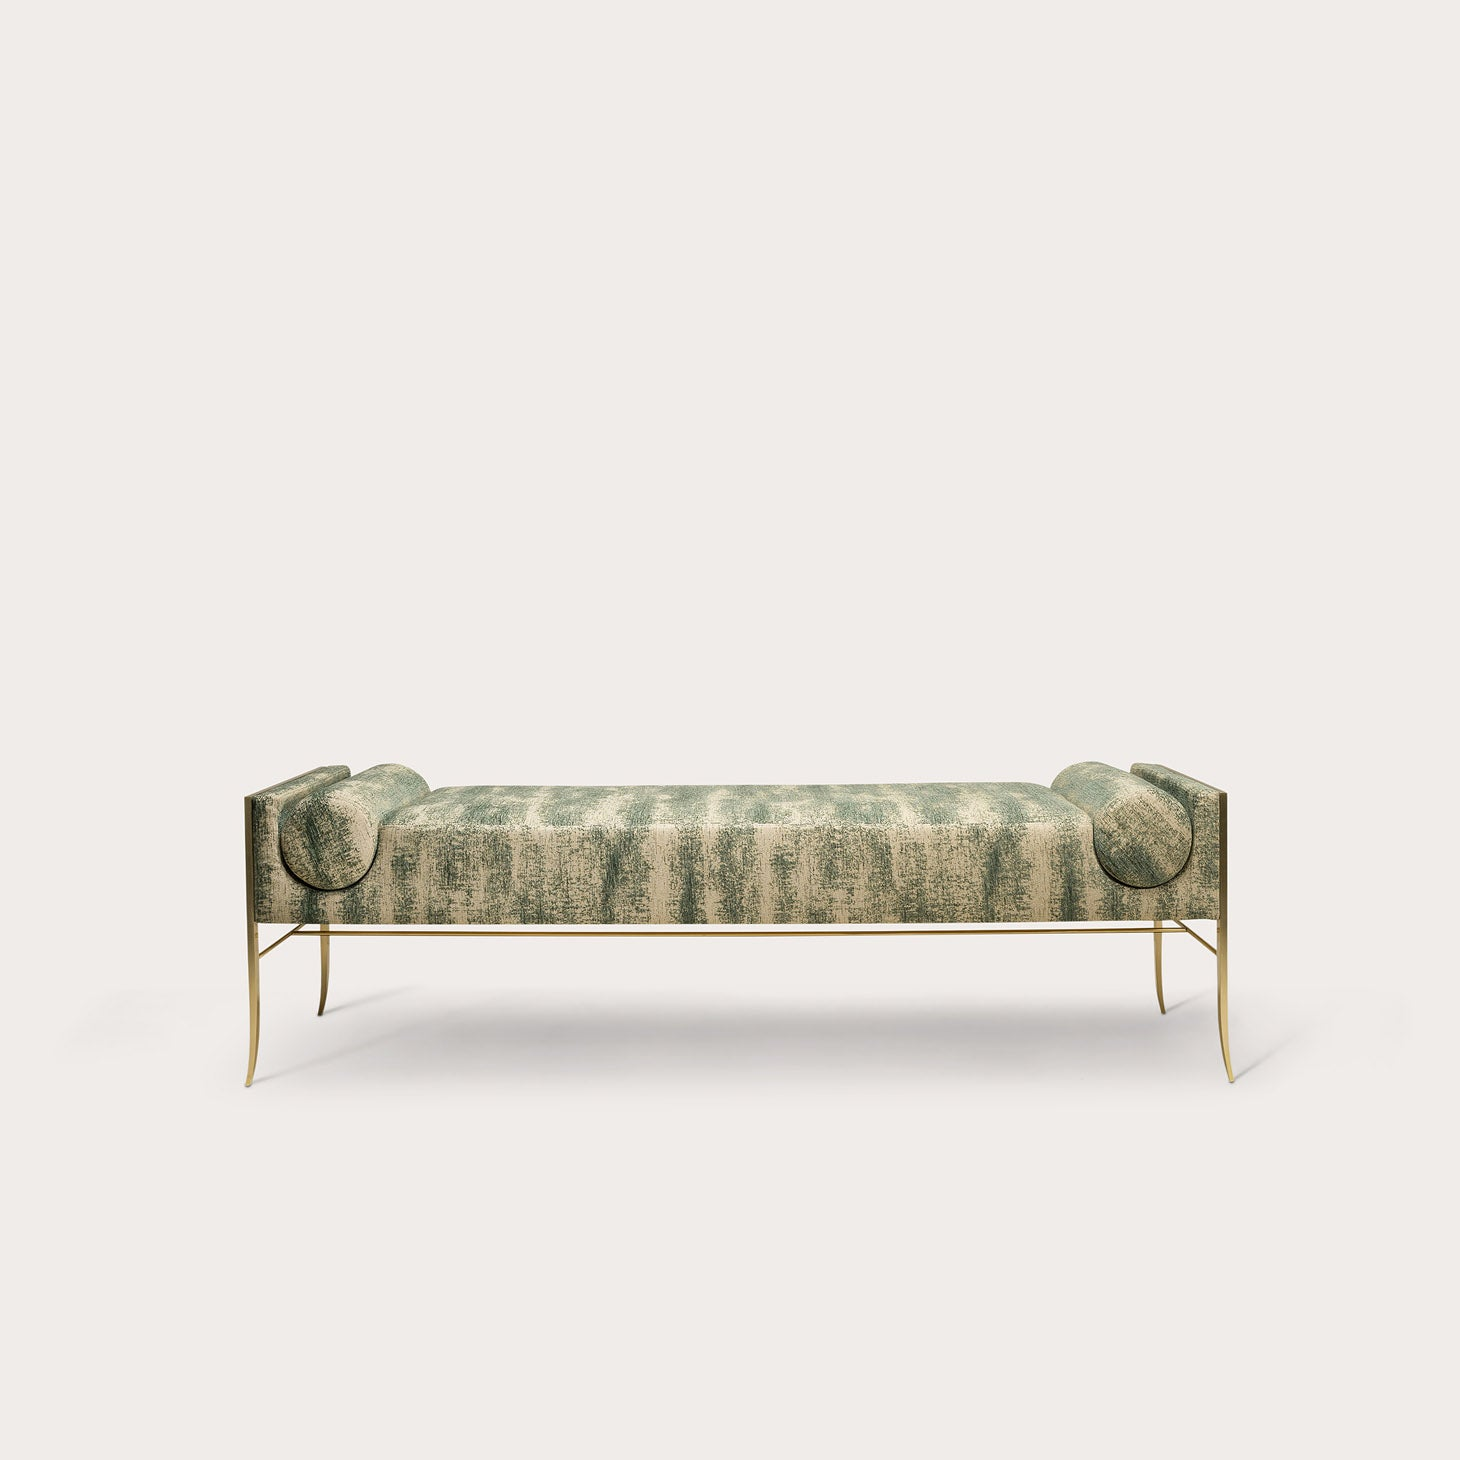 COURTRAI Daybed Beds Bruno Moinard Designer Furniture Sku: 773-110-10000